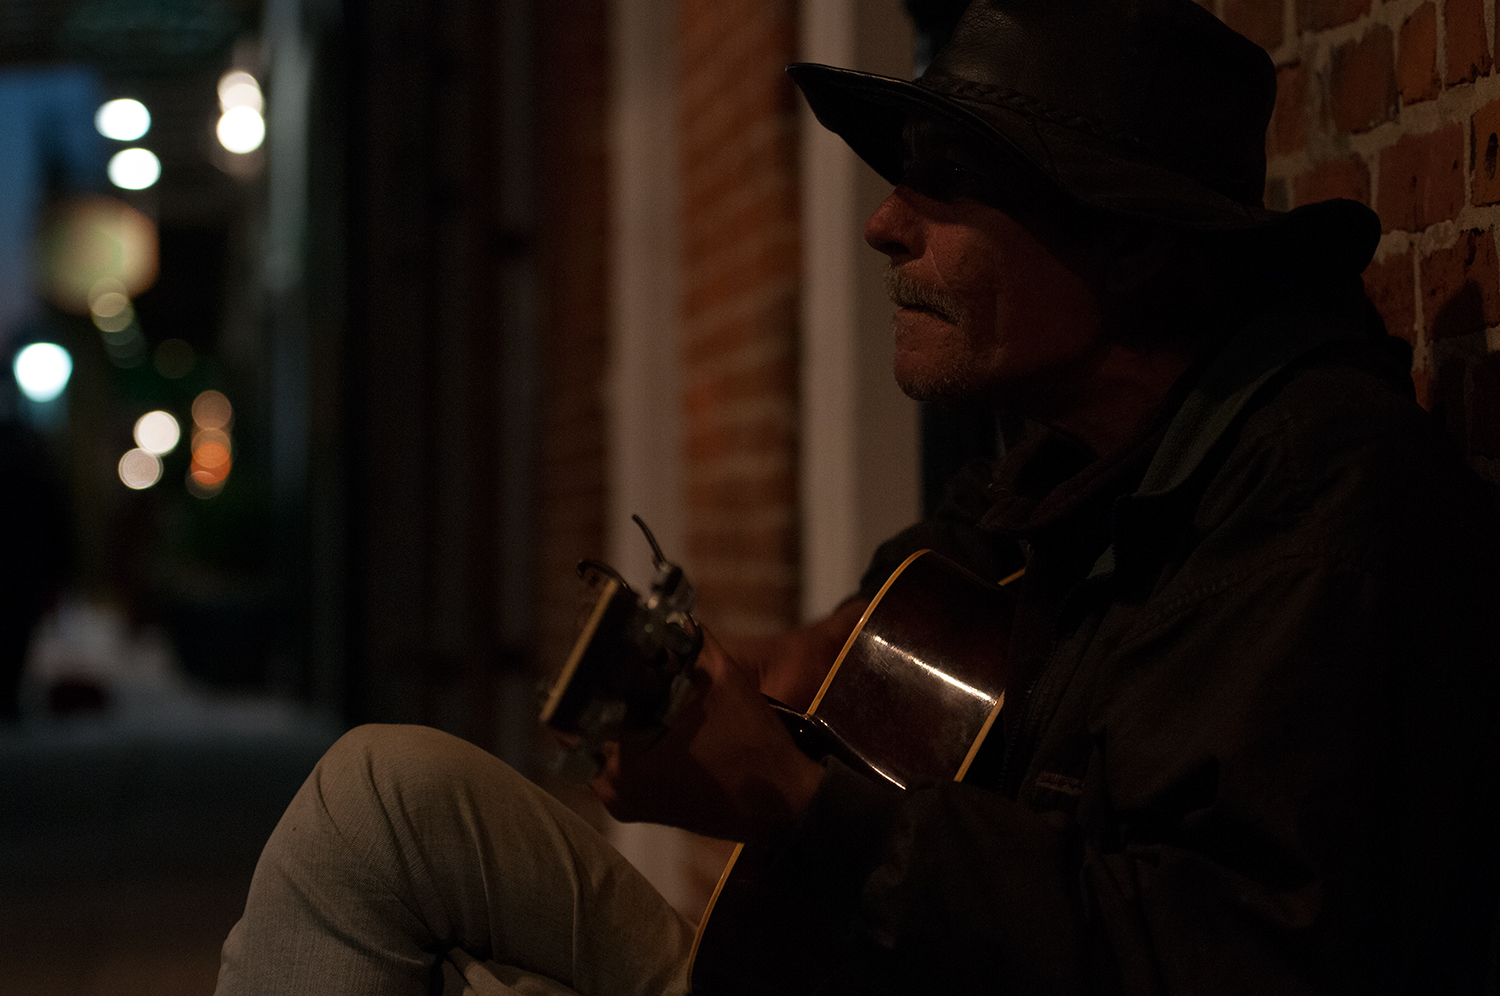 Jacob playing guitar in the middle of the night.